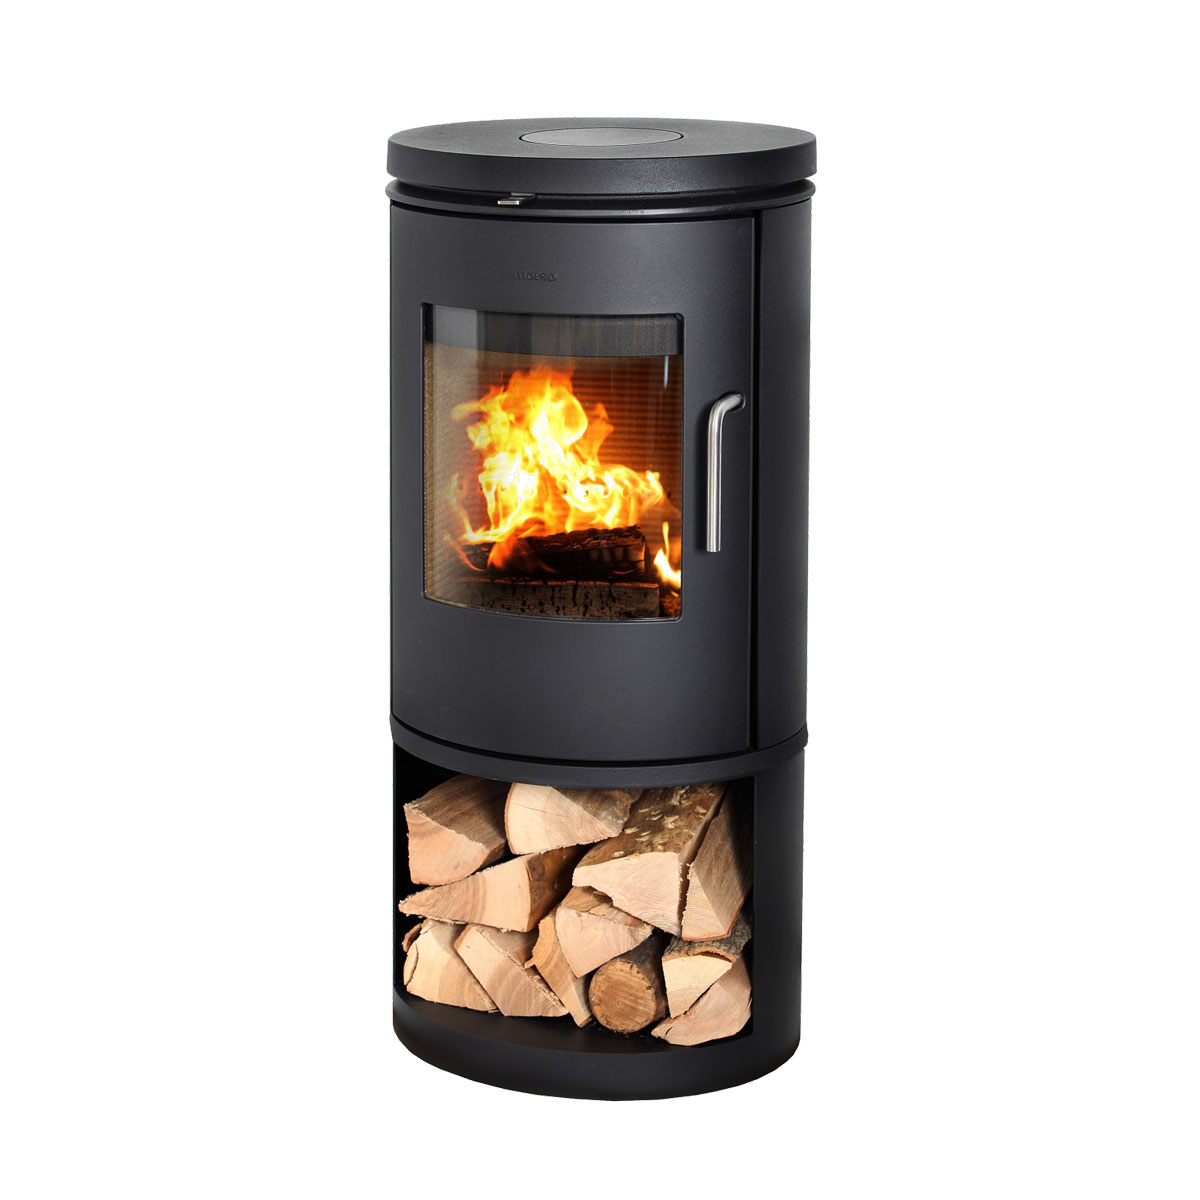 Morso 6143 wood heater with door and wood storage